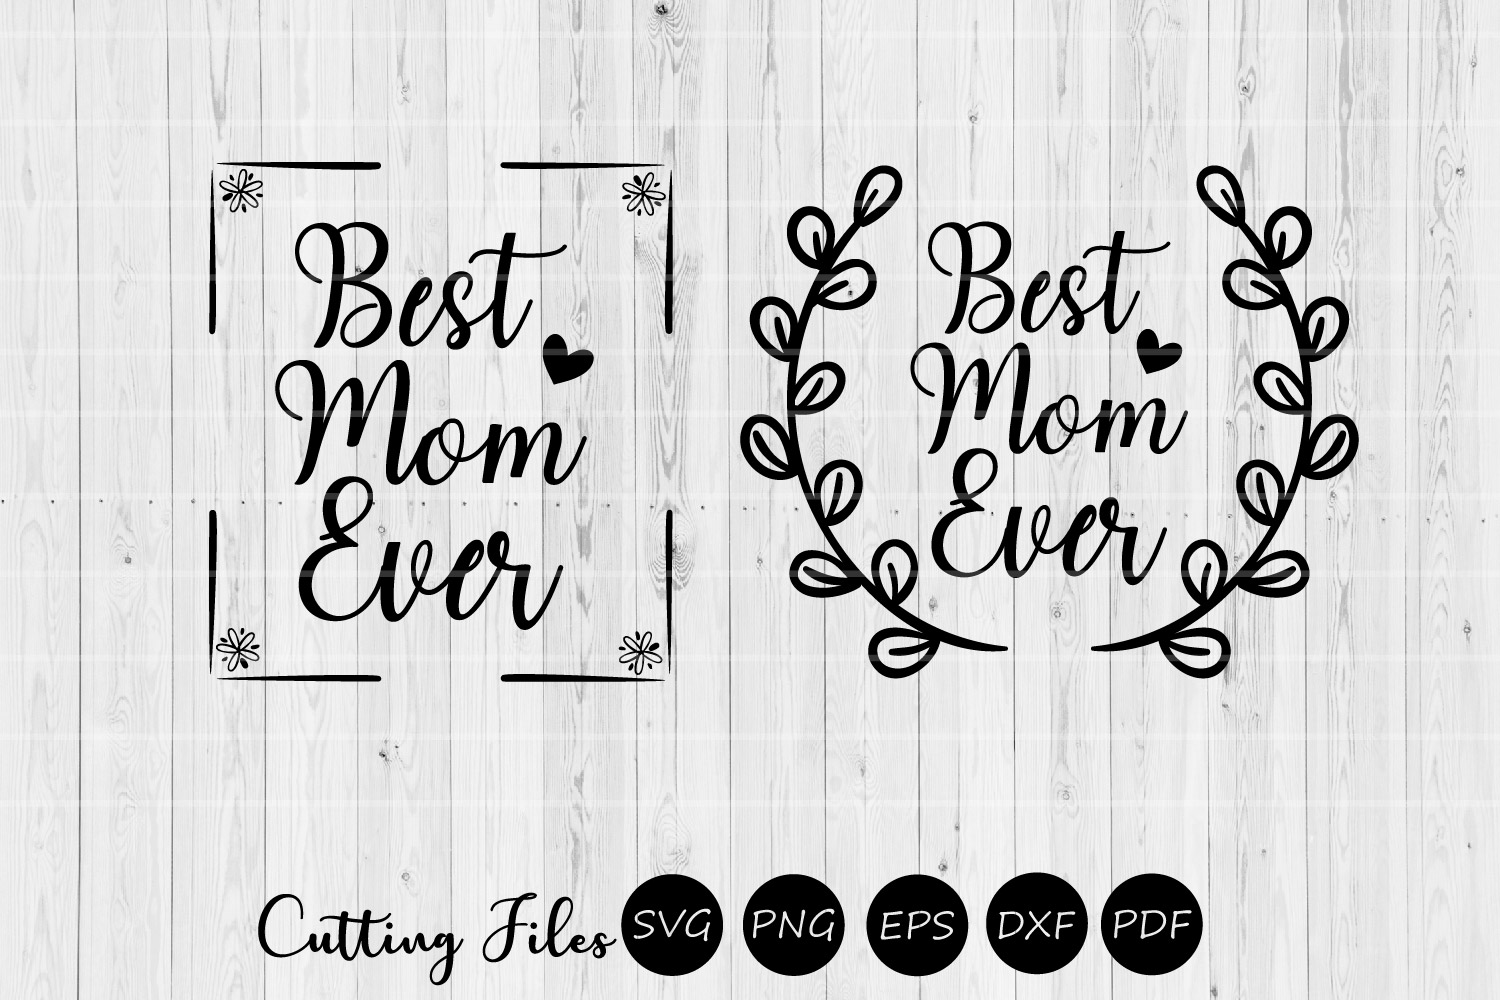 Best Mom Ever Mom Life Svg Graphic By Hd Art Workshop